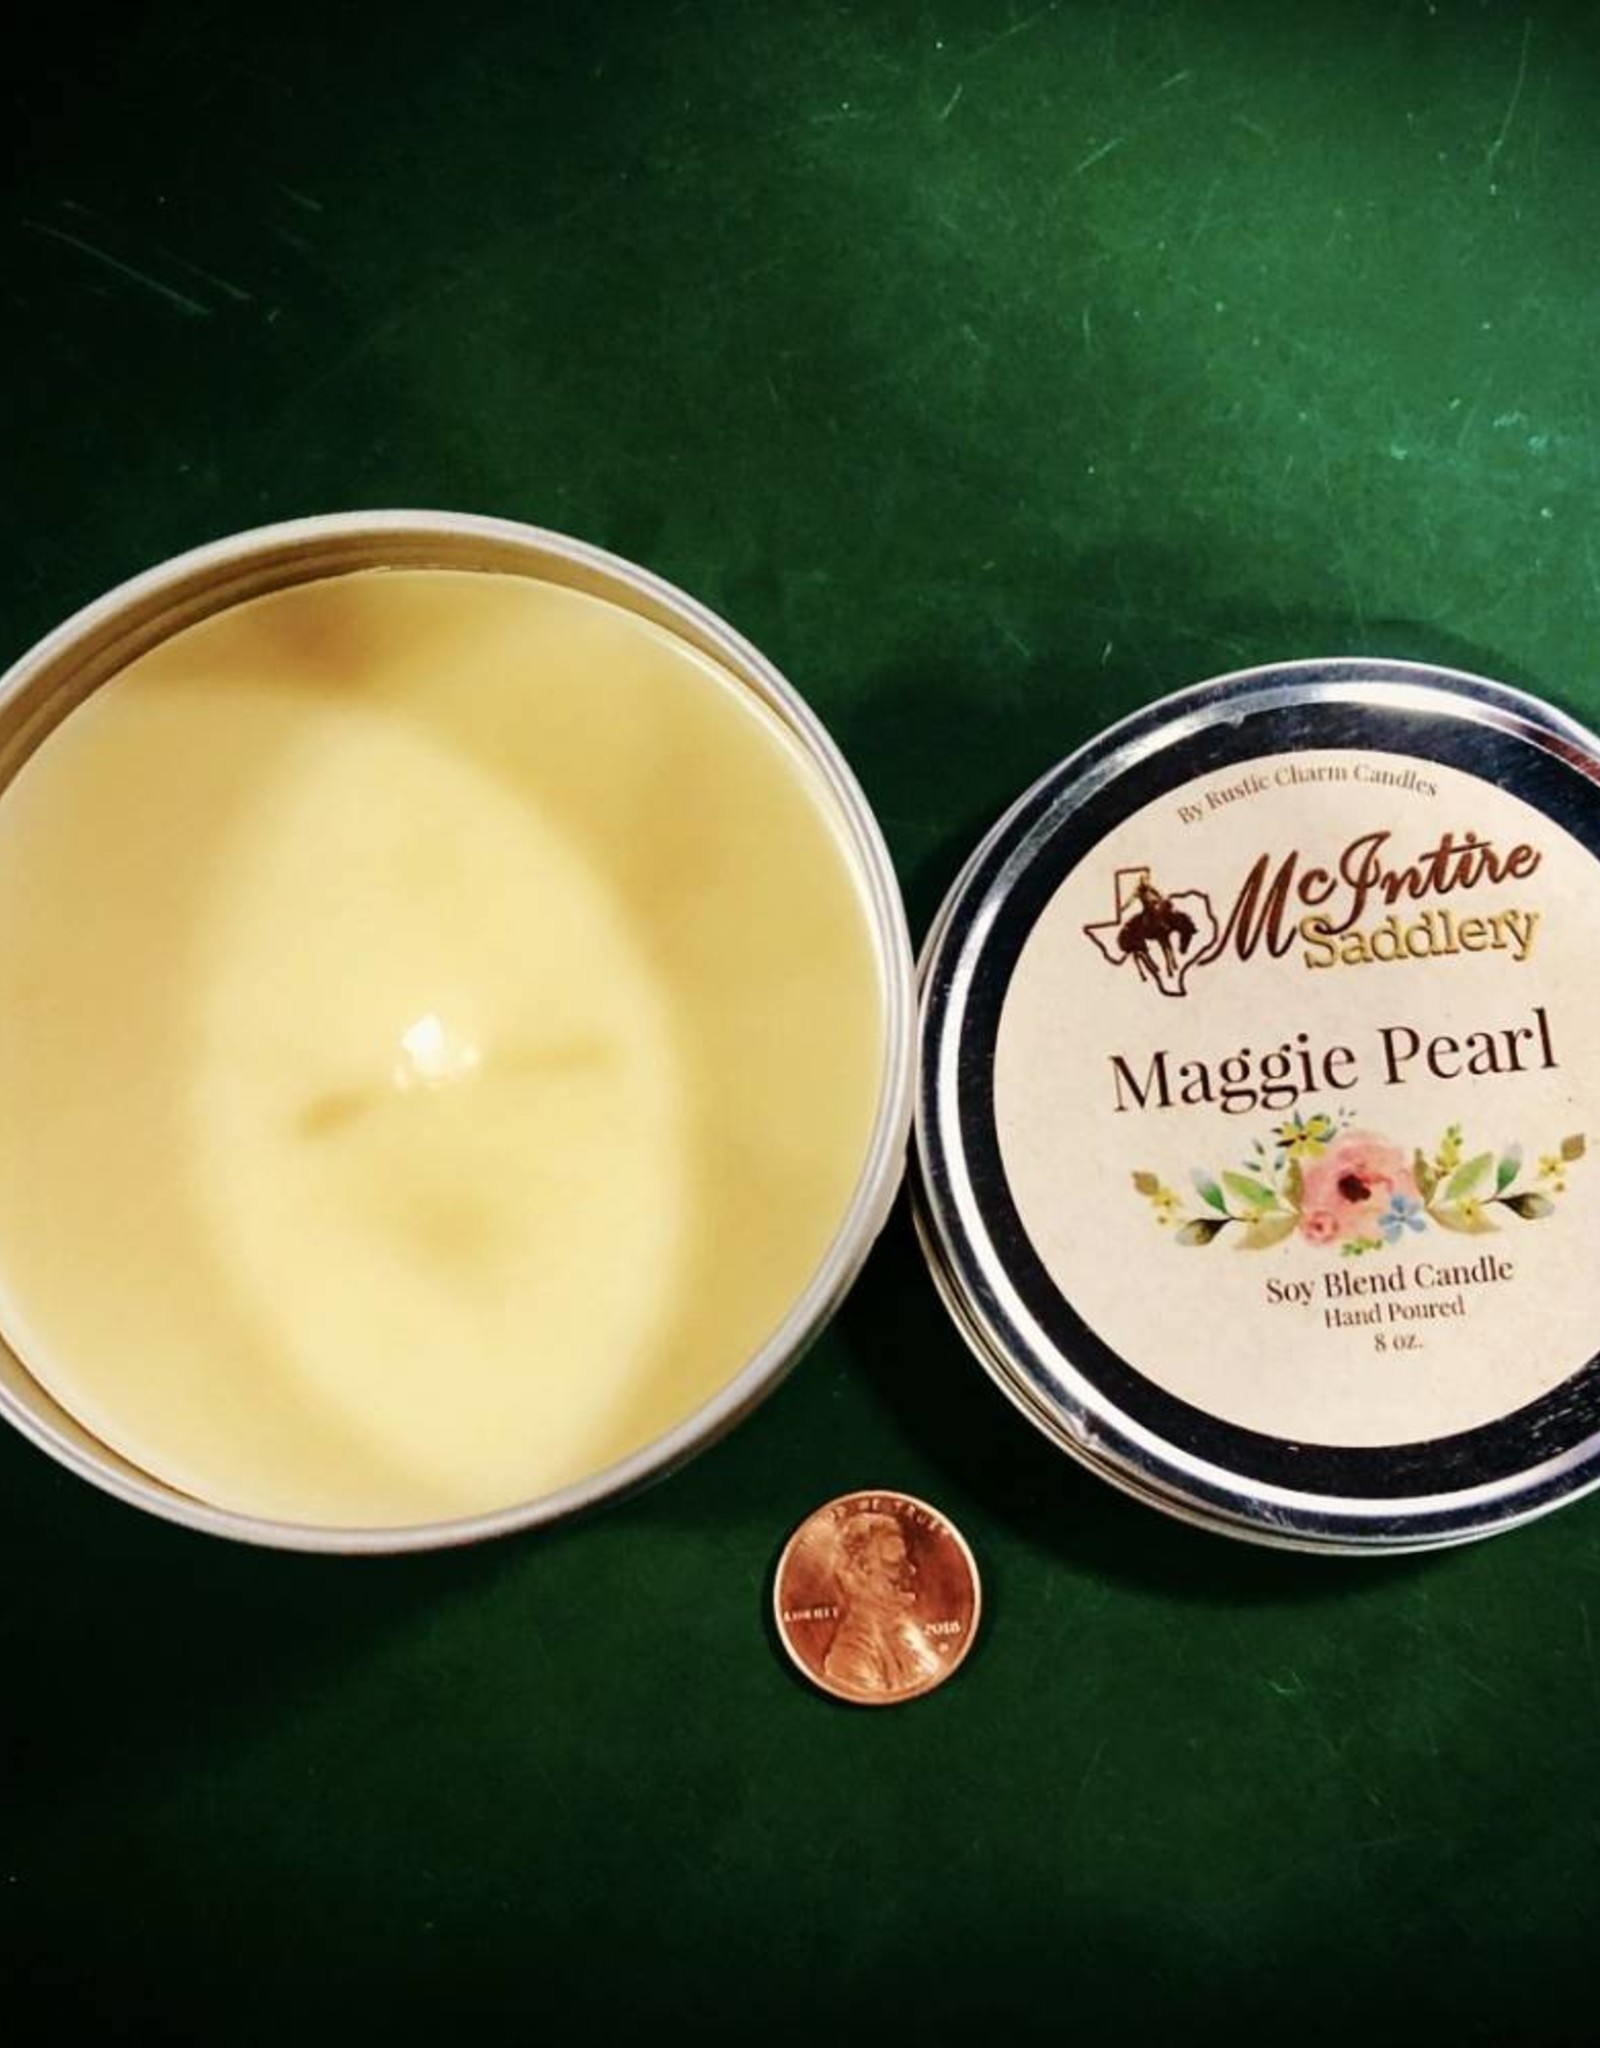 CANDLE MCINTIRE SADDLERY CANDLES